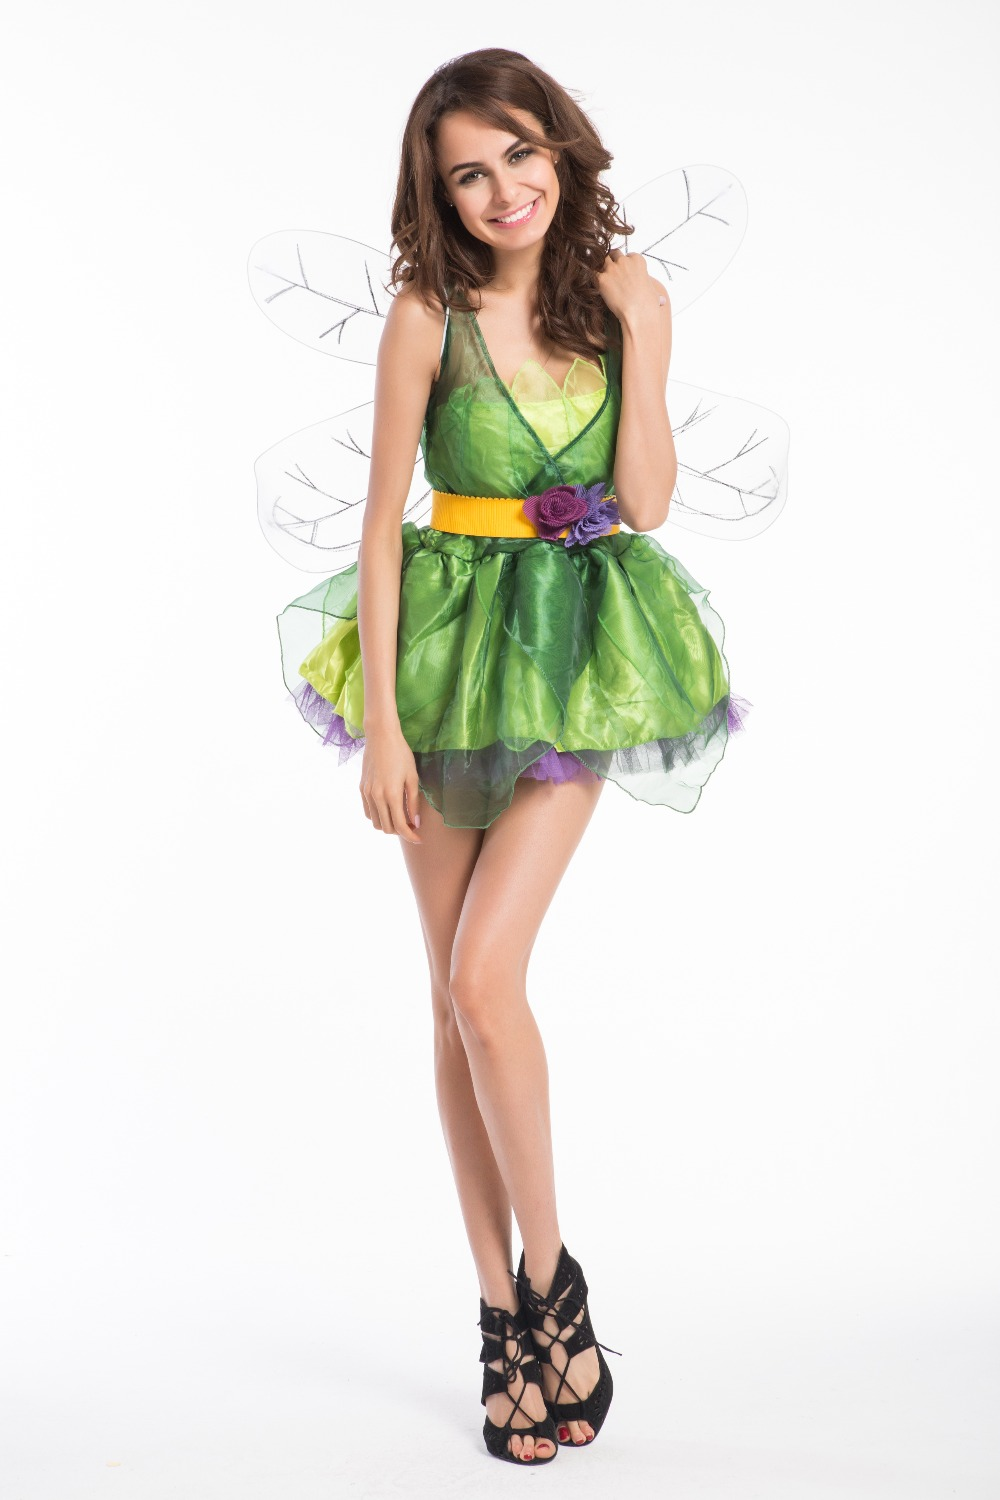 free shipping sexy woodland green fairy tinkerbell dress outfit adult halloween costume new 1056 8638 - Green Fairy Halloween Costume